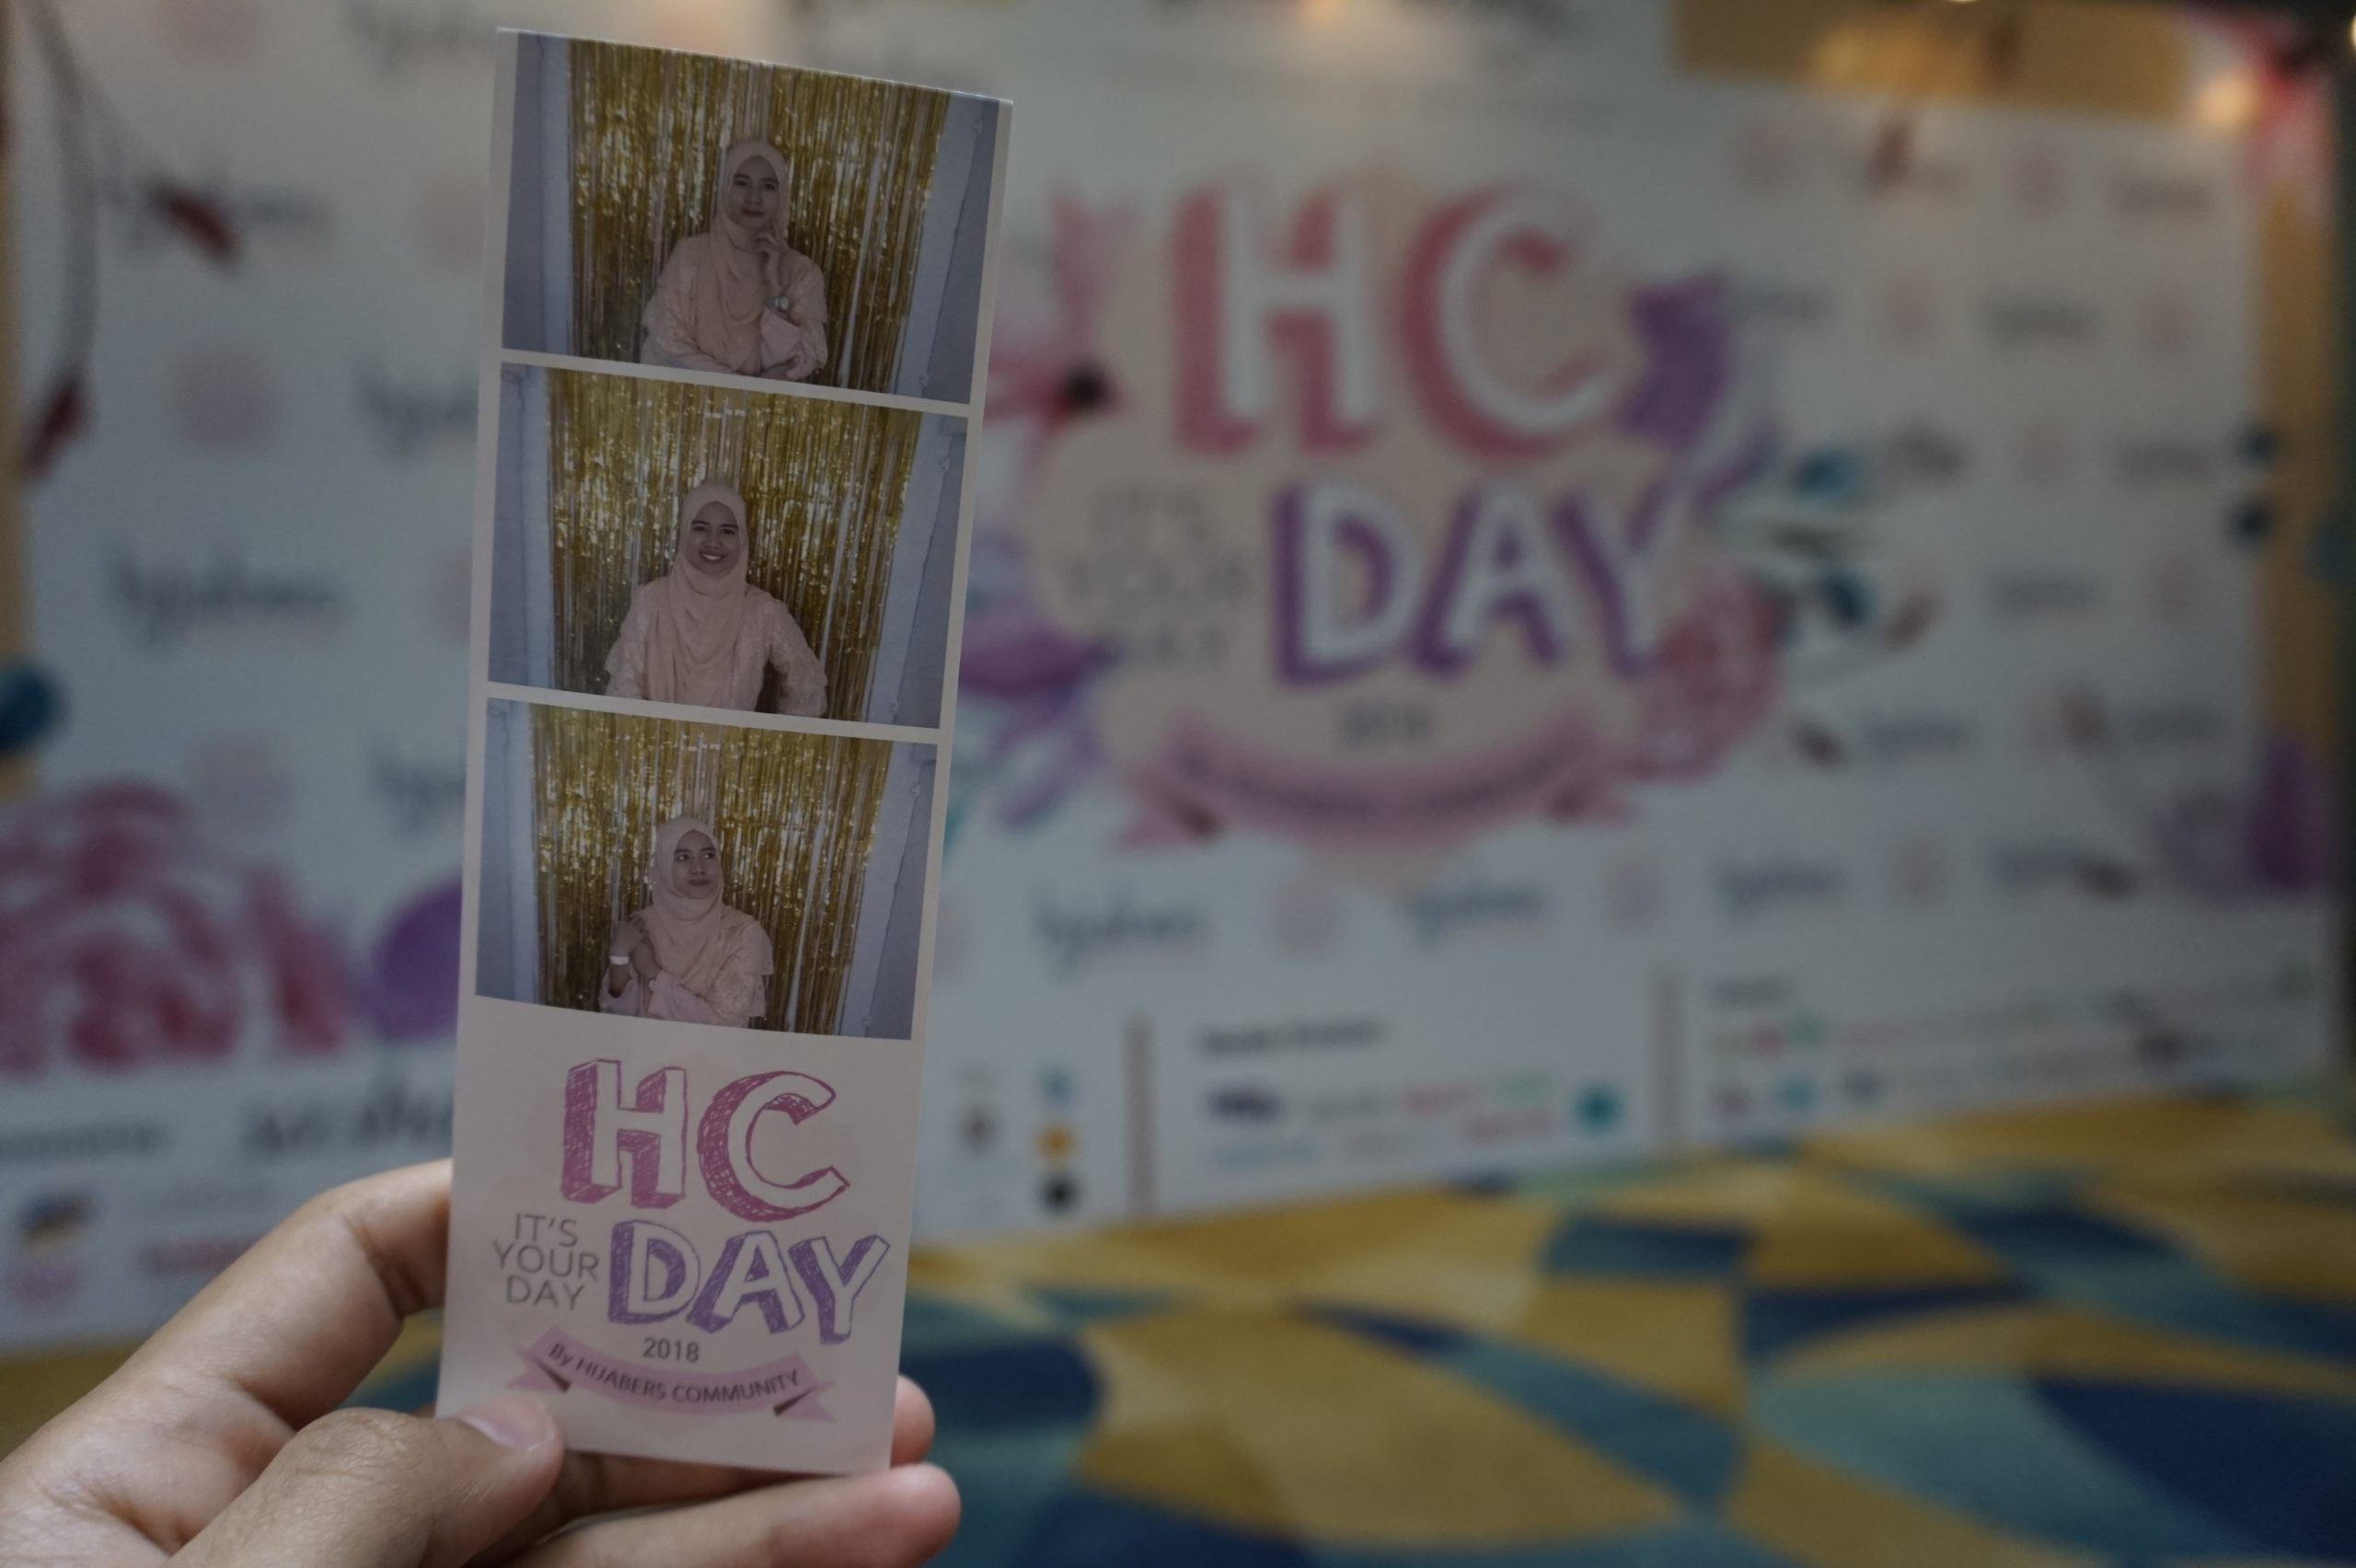 Keseruan Hijabers Community Day 2018